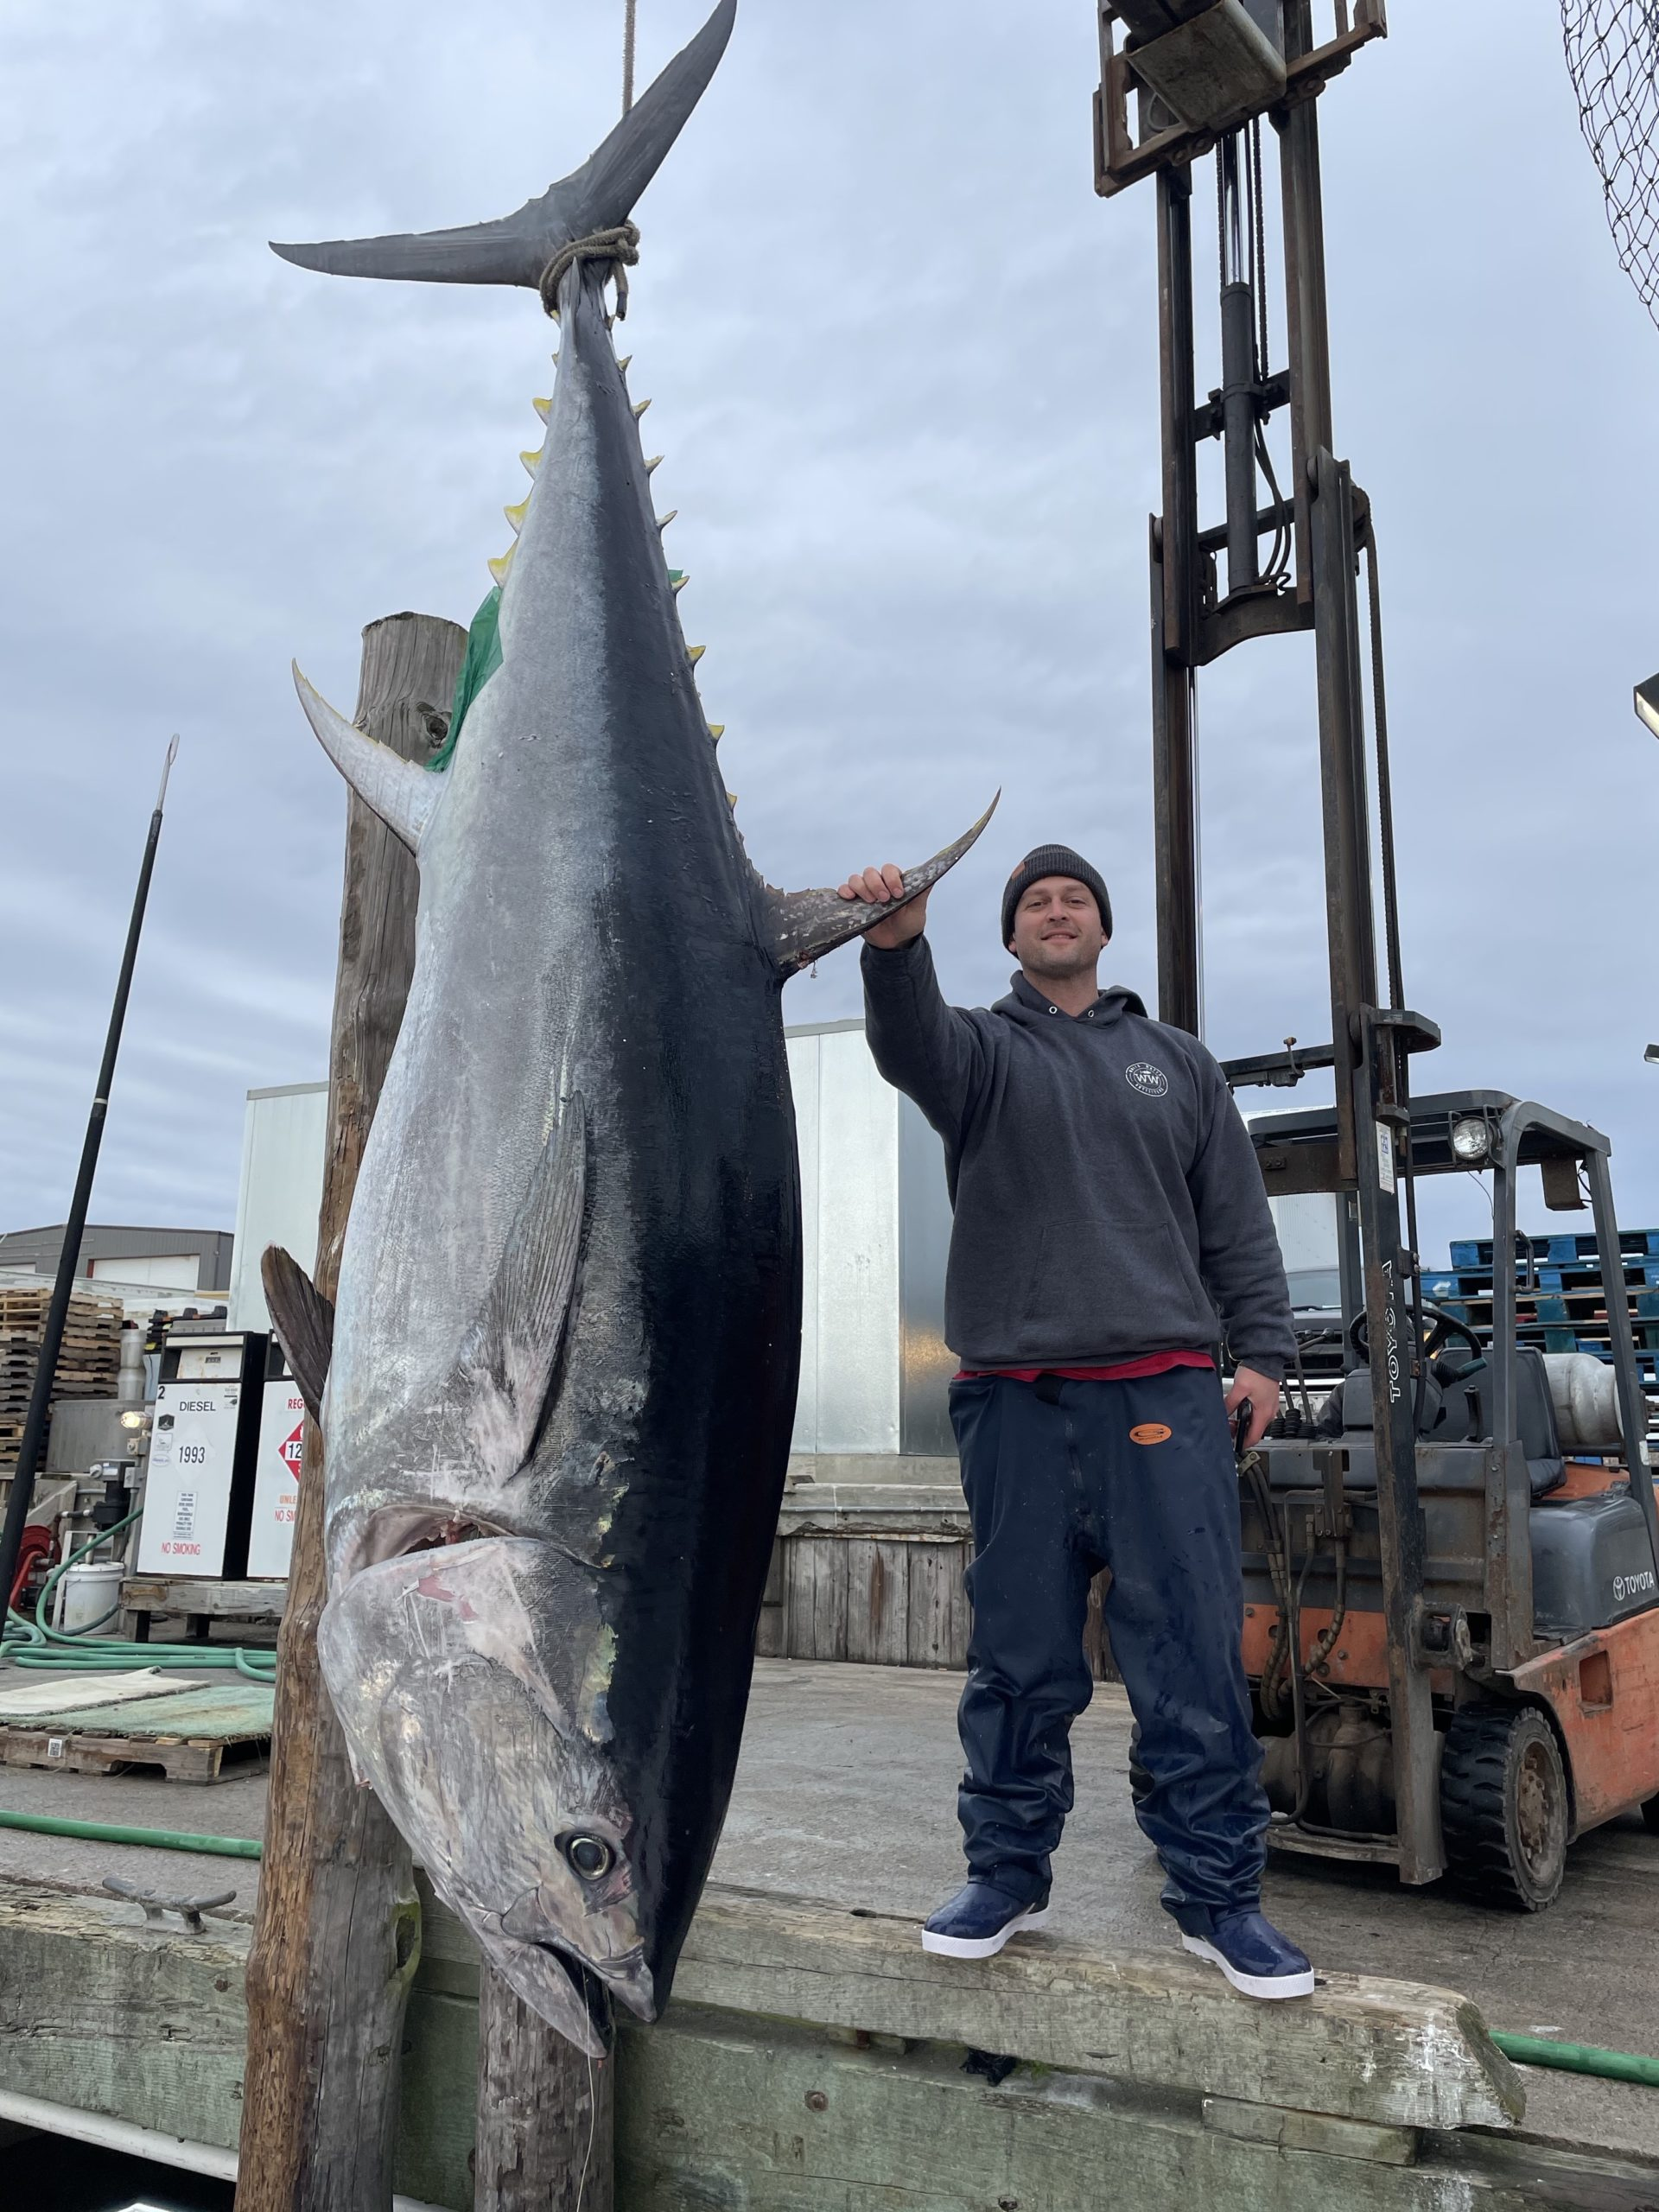 Marty Clarke of Sag Harbor with one of the giant bluefin tuna that some diehard local fishermen follow to North Carolina in winter.